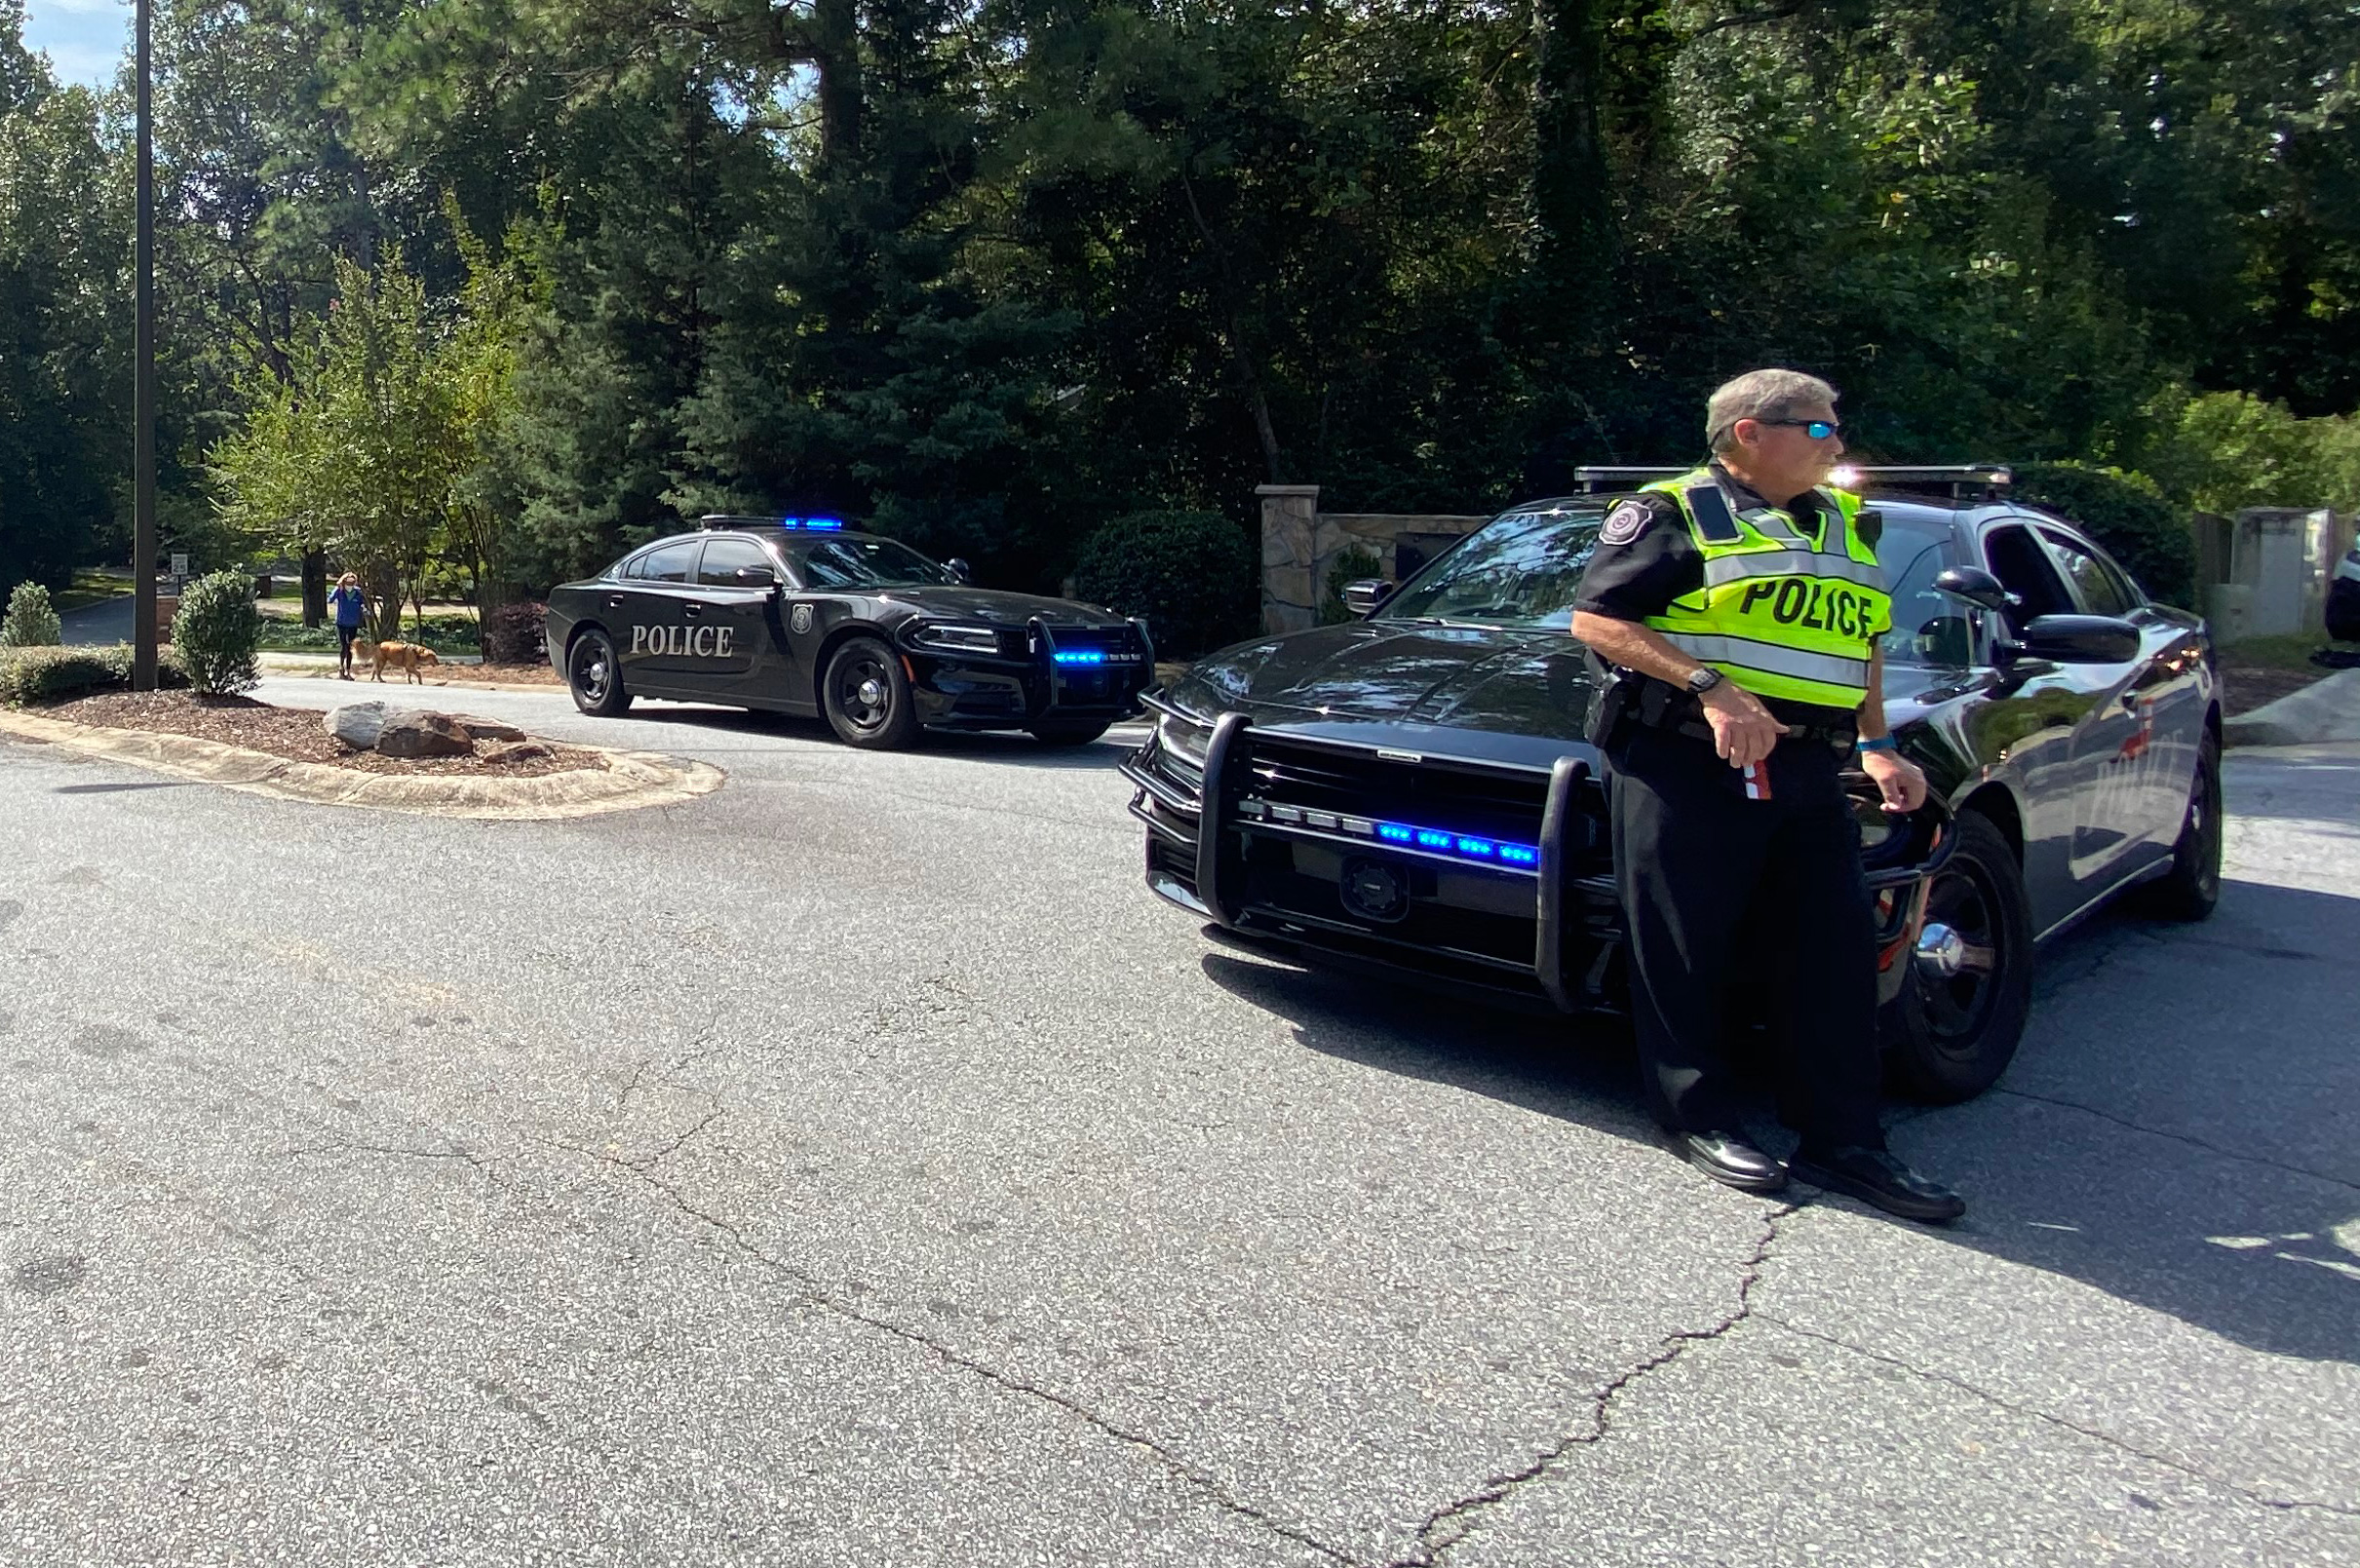 Standoff in suburban Atlanta ends peacefully with barricaded gunman arrested